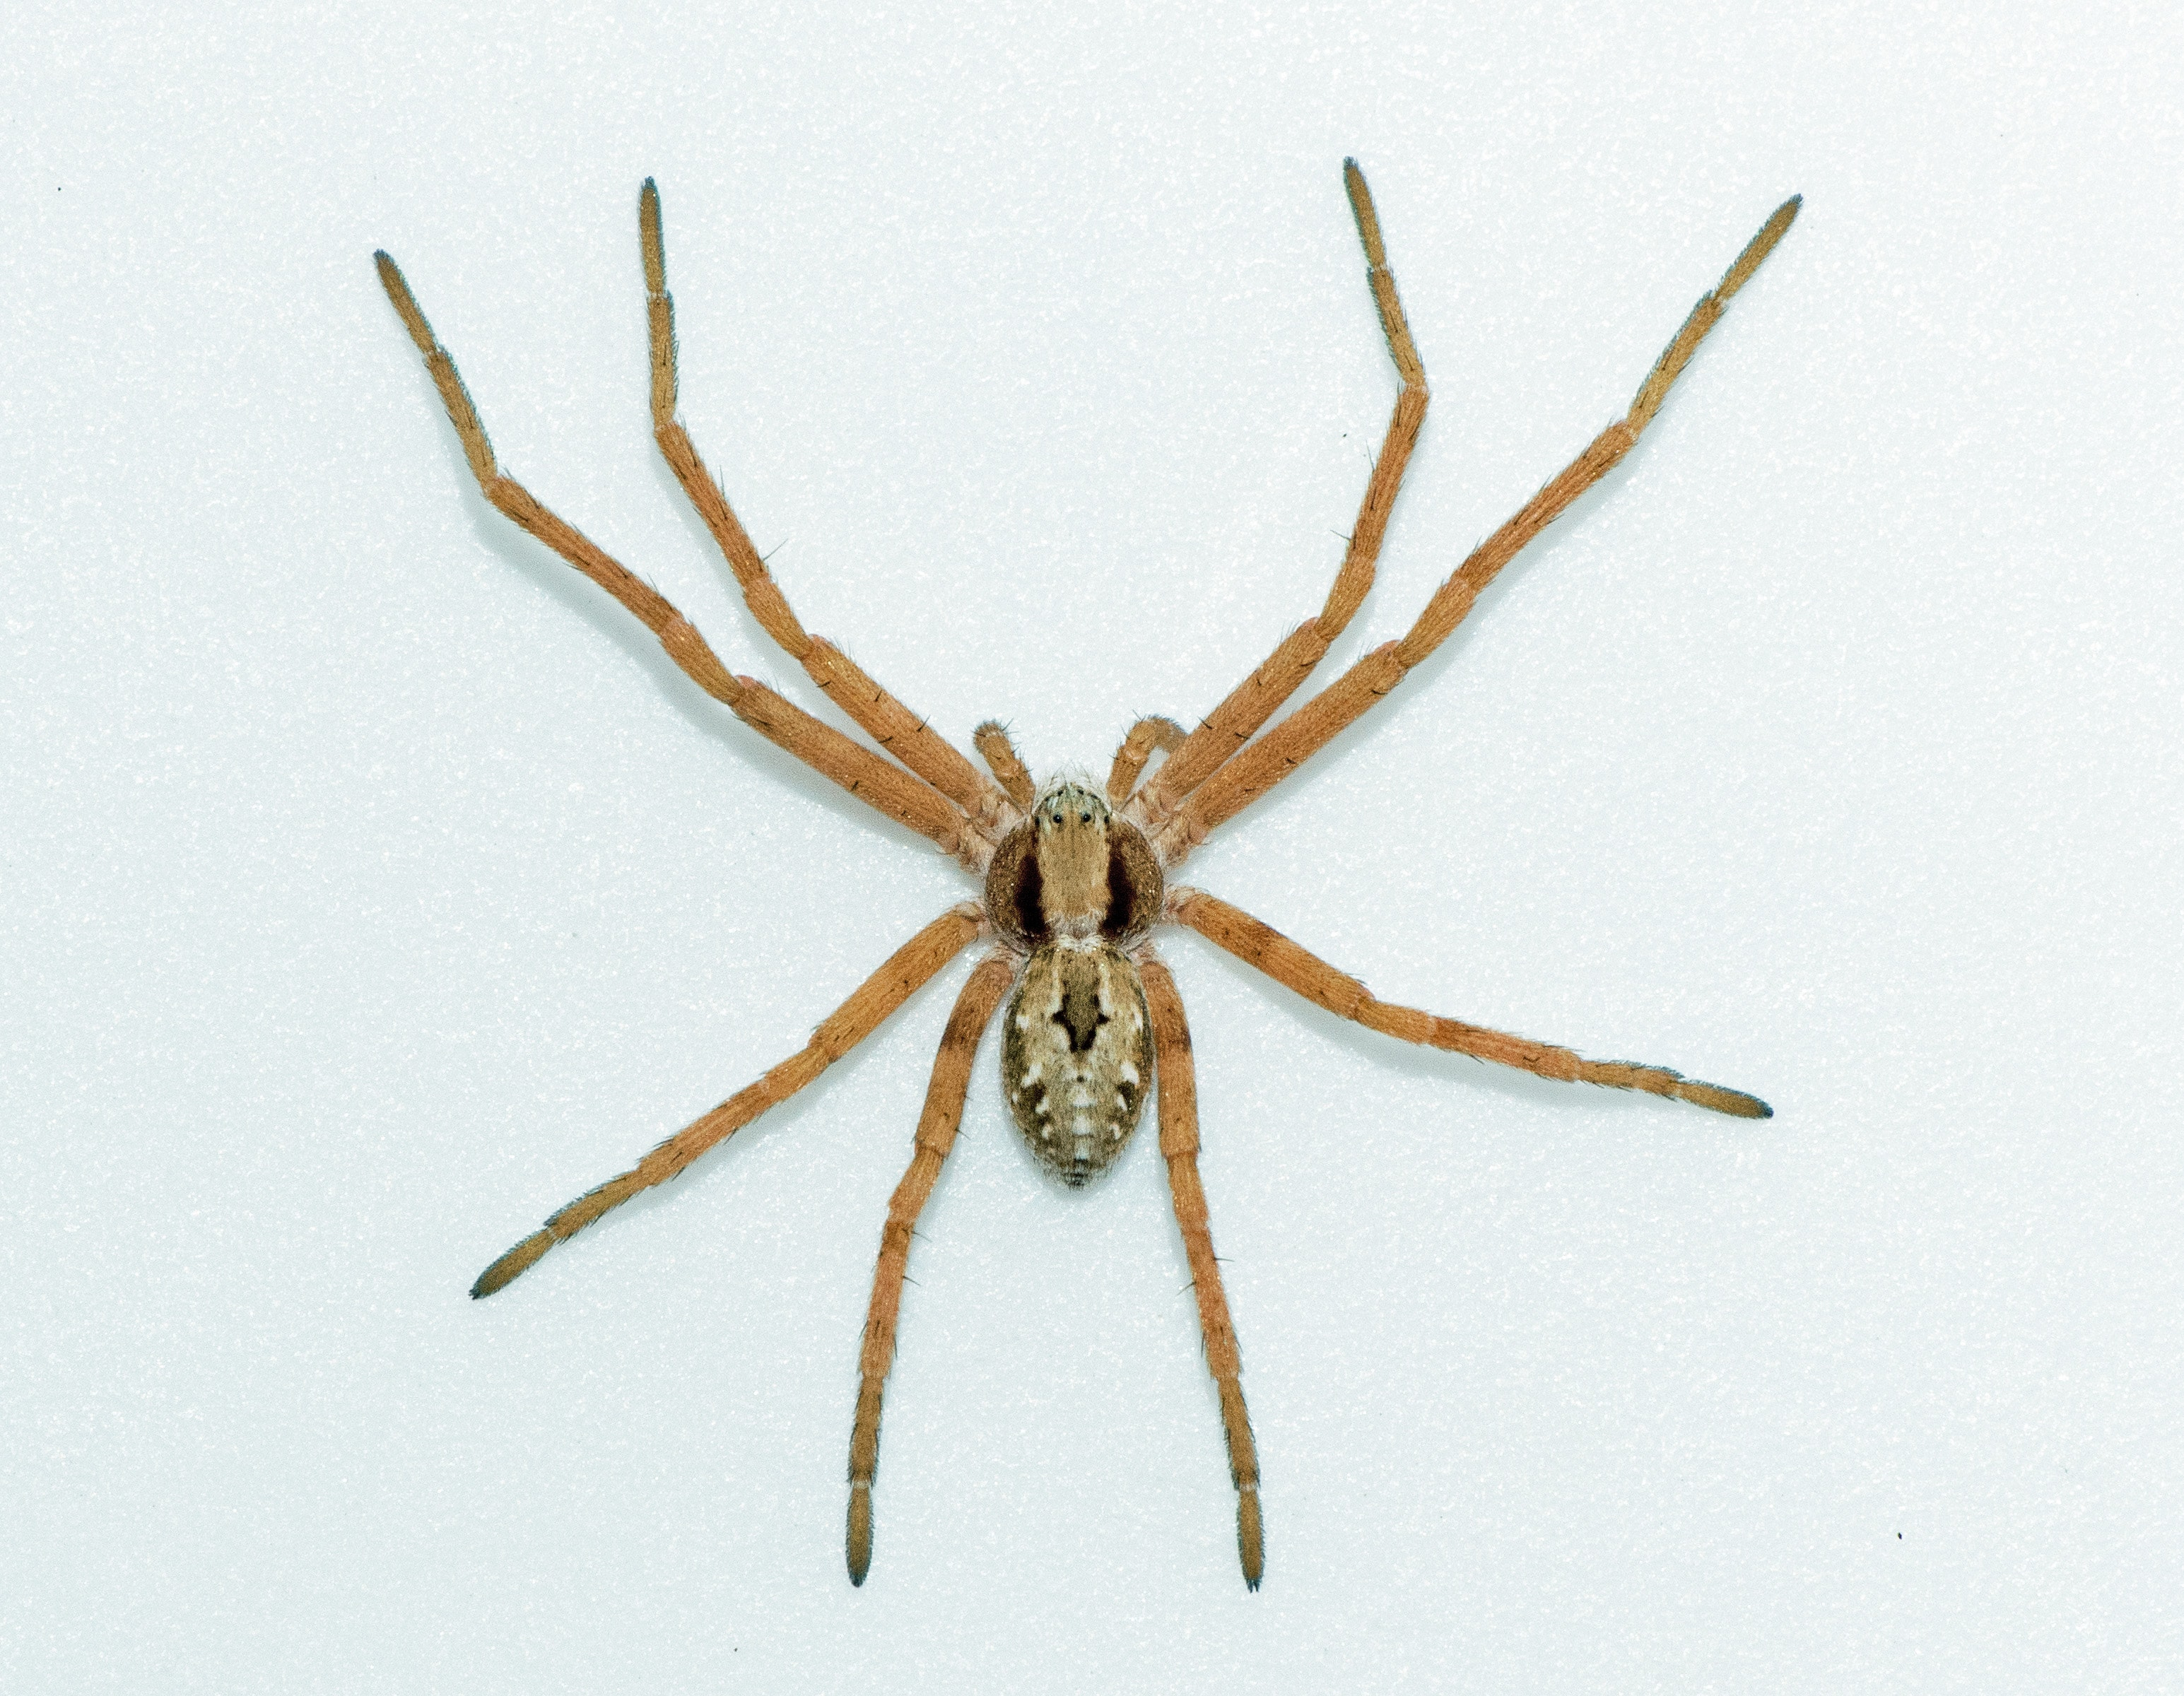 Picture of Thanatus vulgaris (Running Crab Spider) - Female - Dorsal